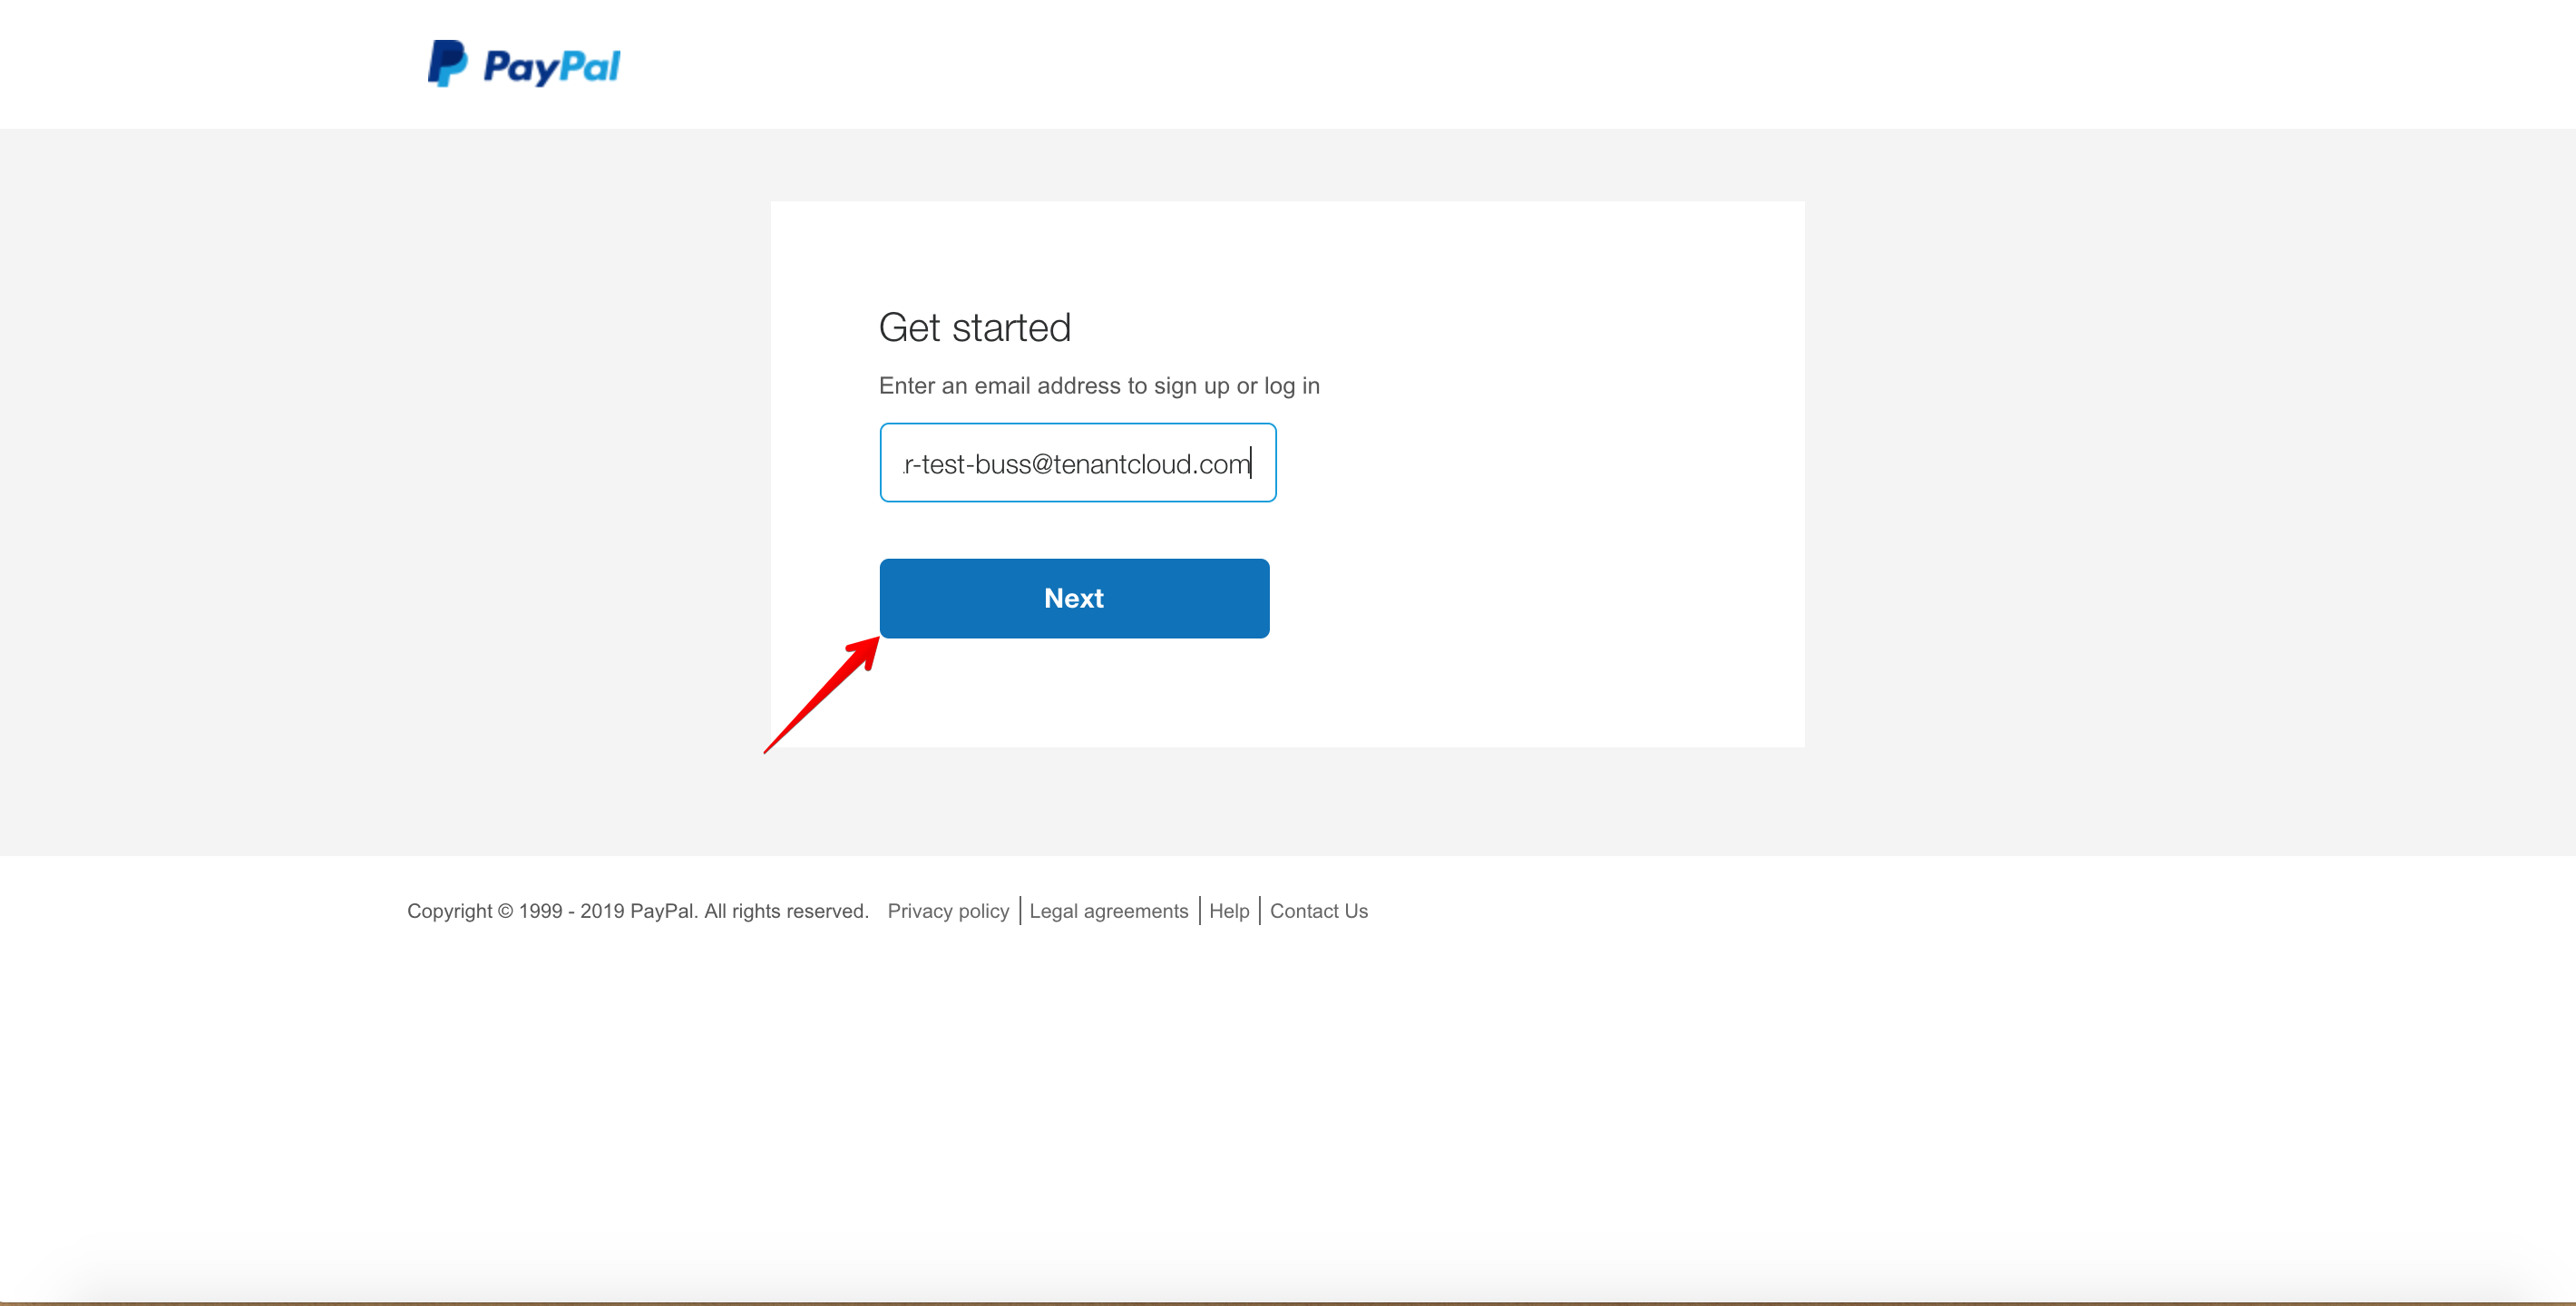 How do I set up my PayPal account?